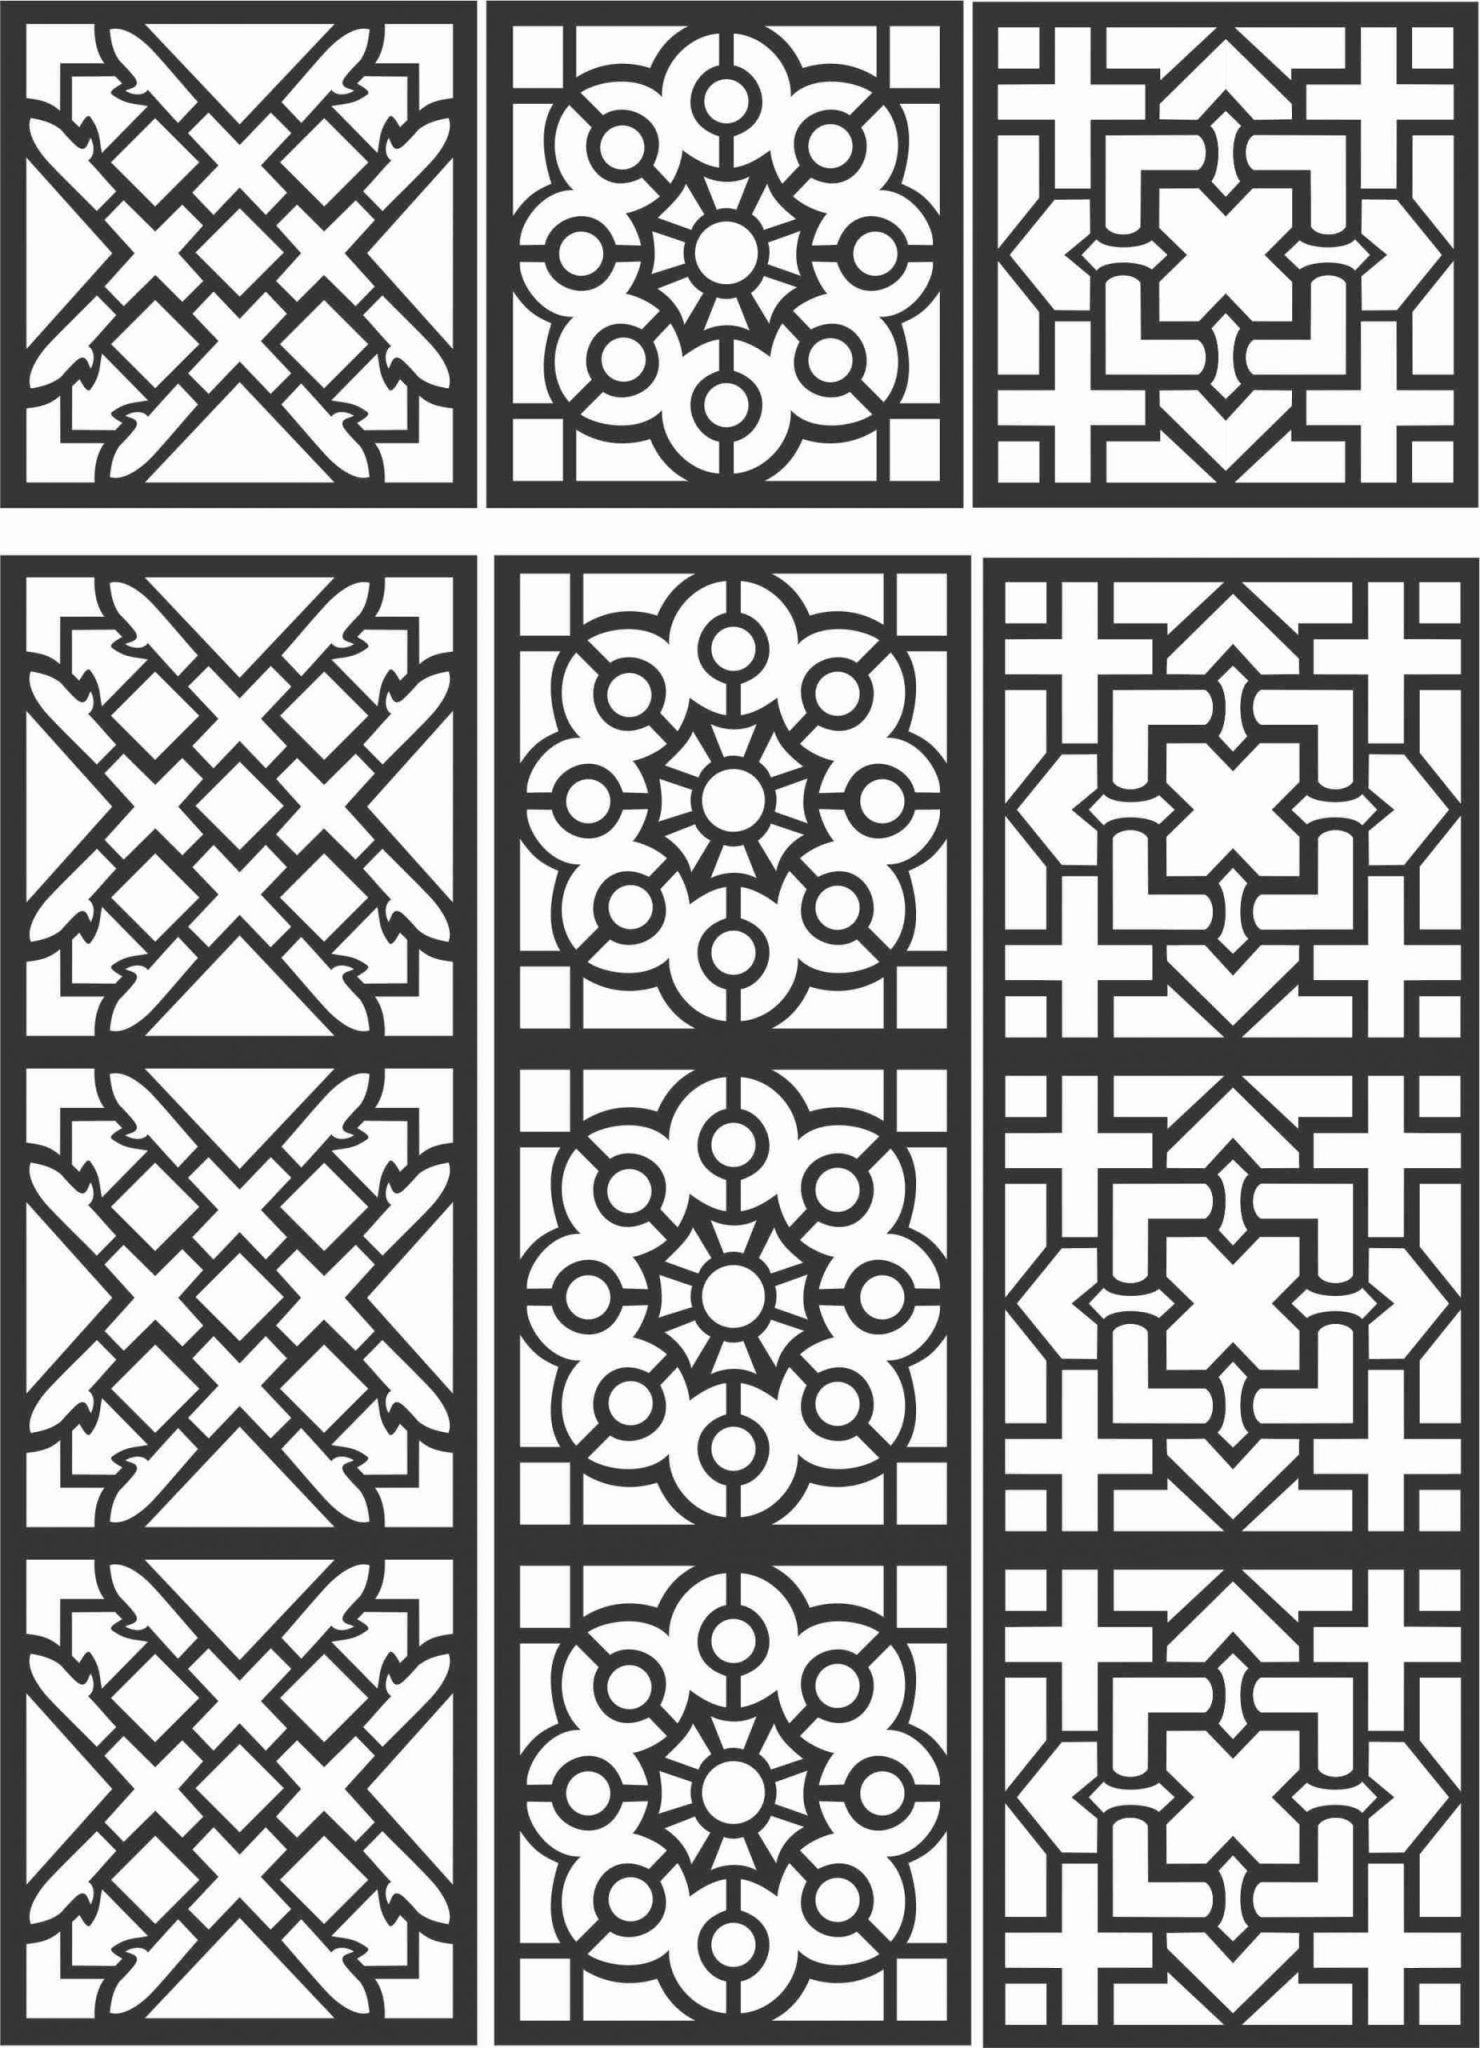 Floral Screen Patterns Design 97 Free DXF File